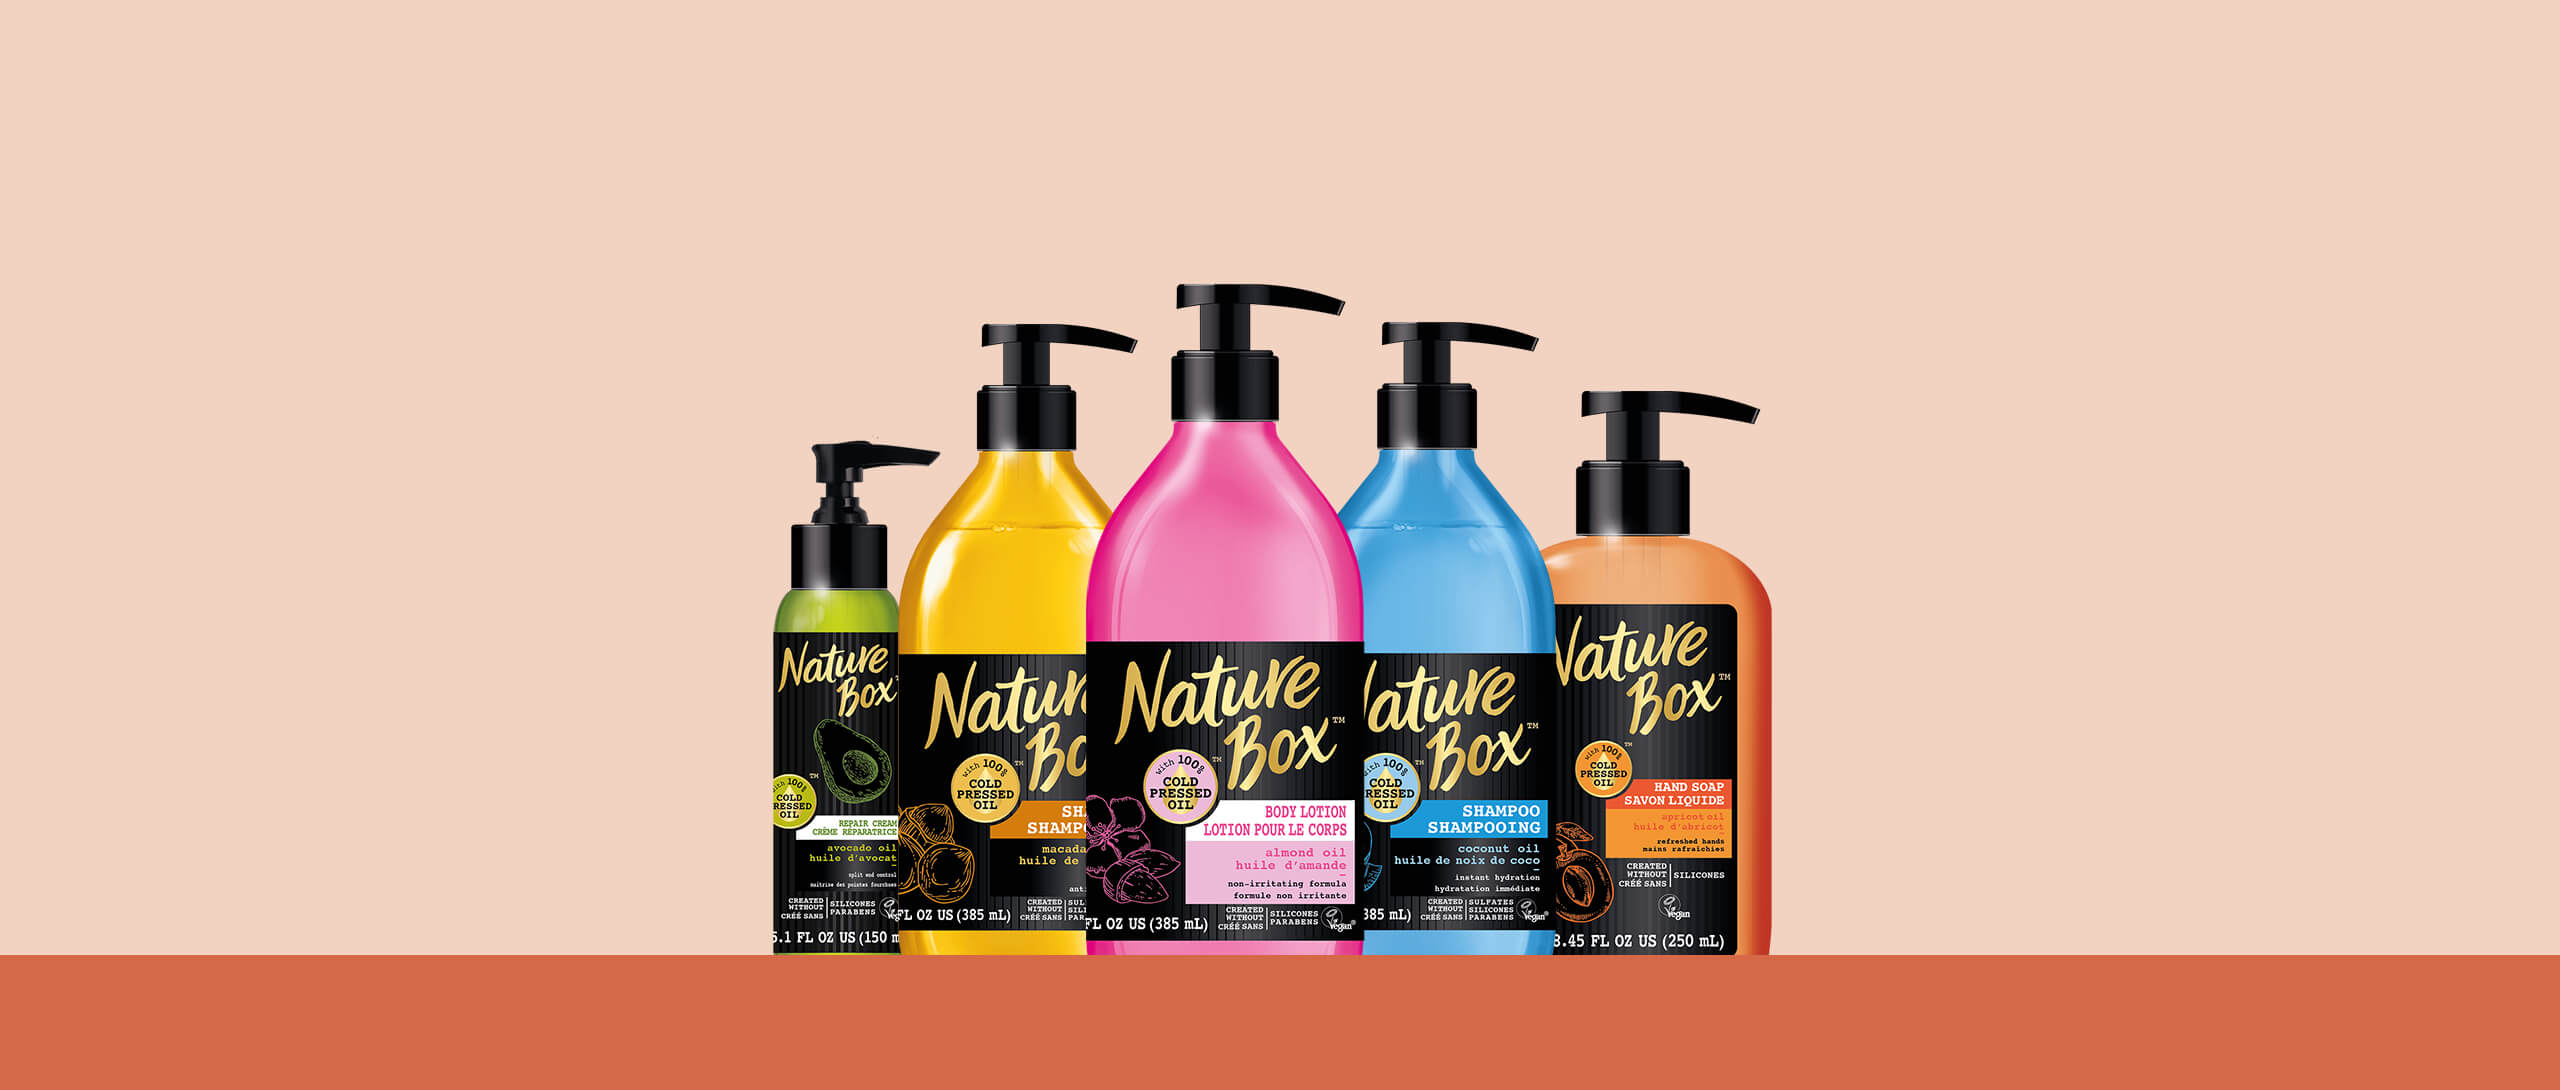 naturebox_us_beauty_collection_2560x1090